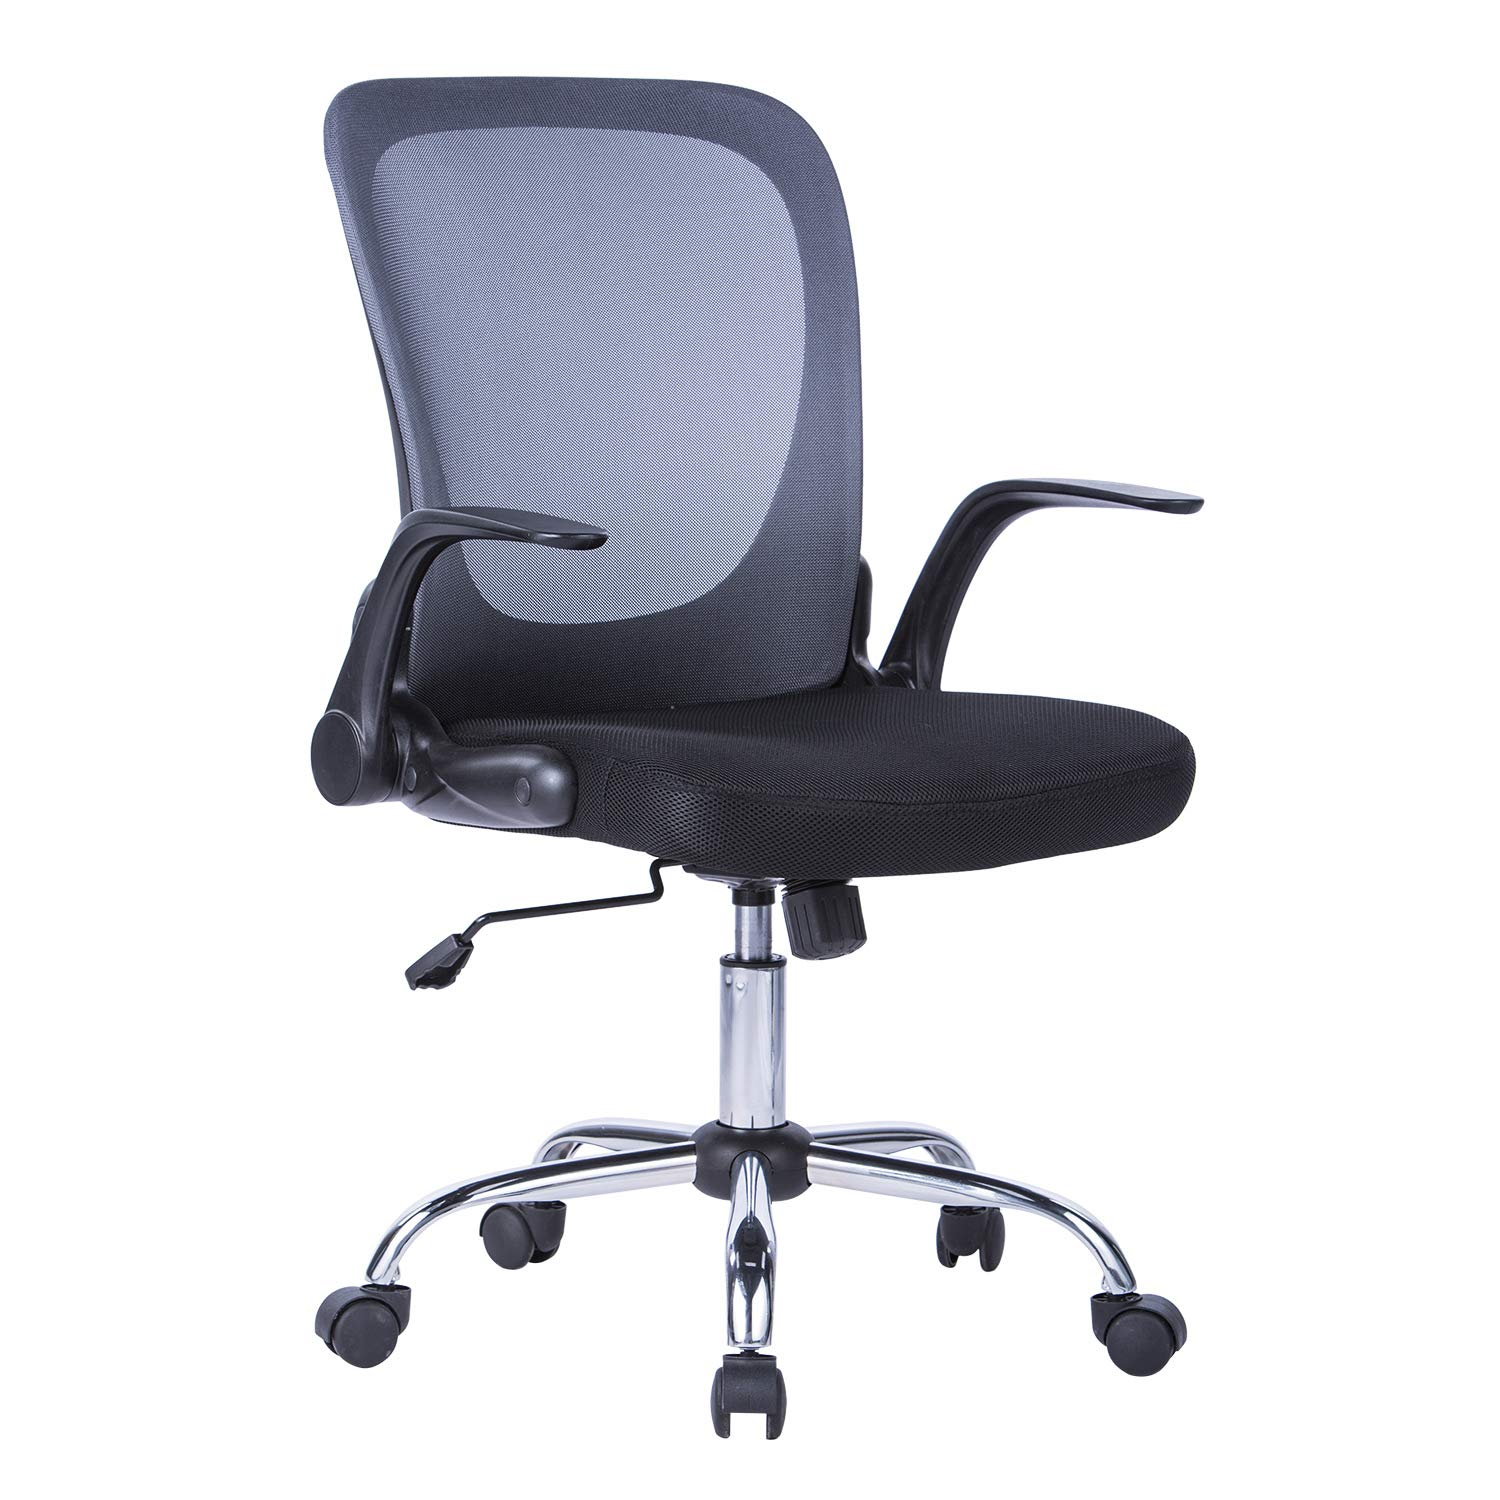 Brilliant Lianfeng Mid Back Mesh Task Chair Ergonomic Swivel Computer Desk Office Chair With Flip Up Arms Siutable For Office And Home Grey Creativecarmelina Interior Chair Design Creativecarmelinacom